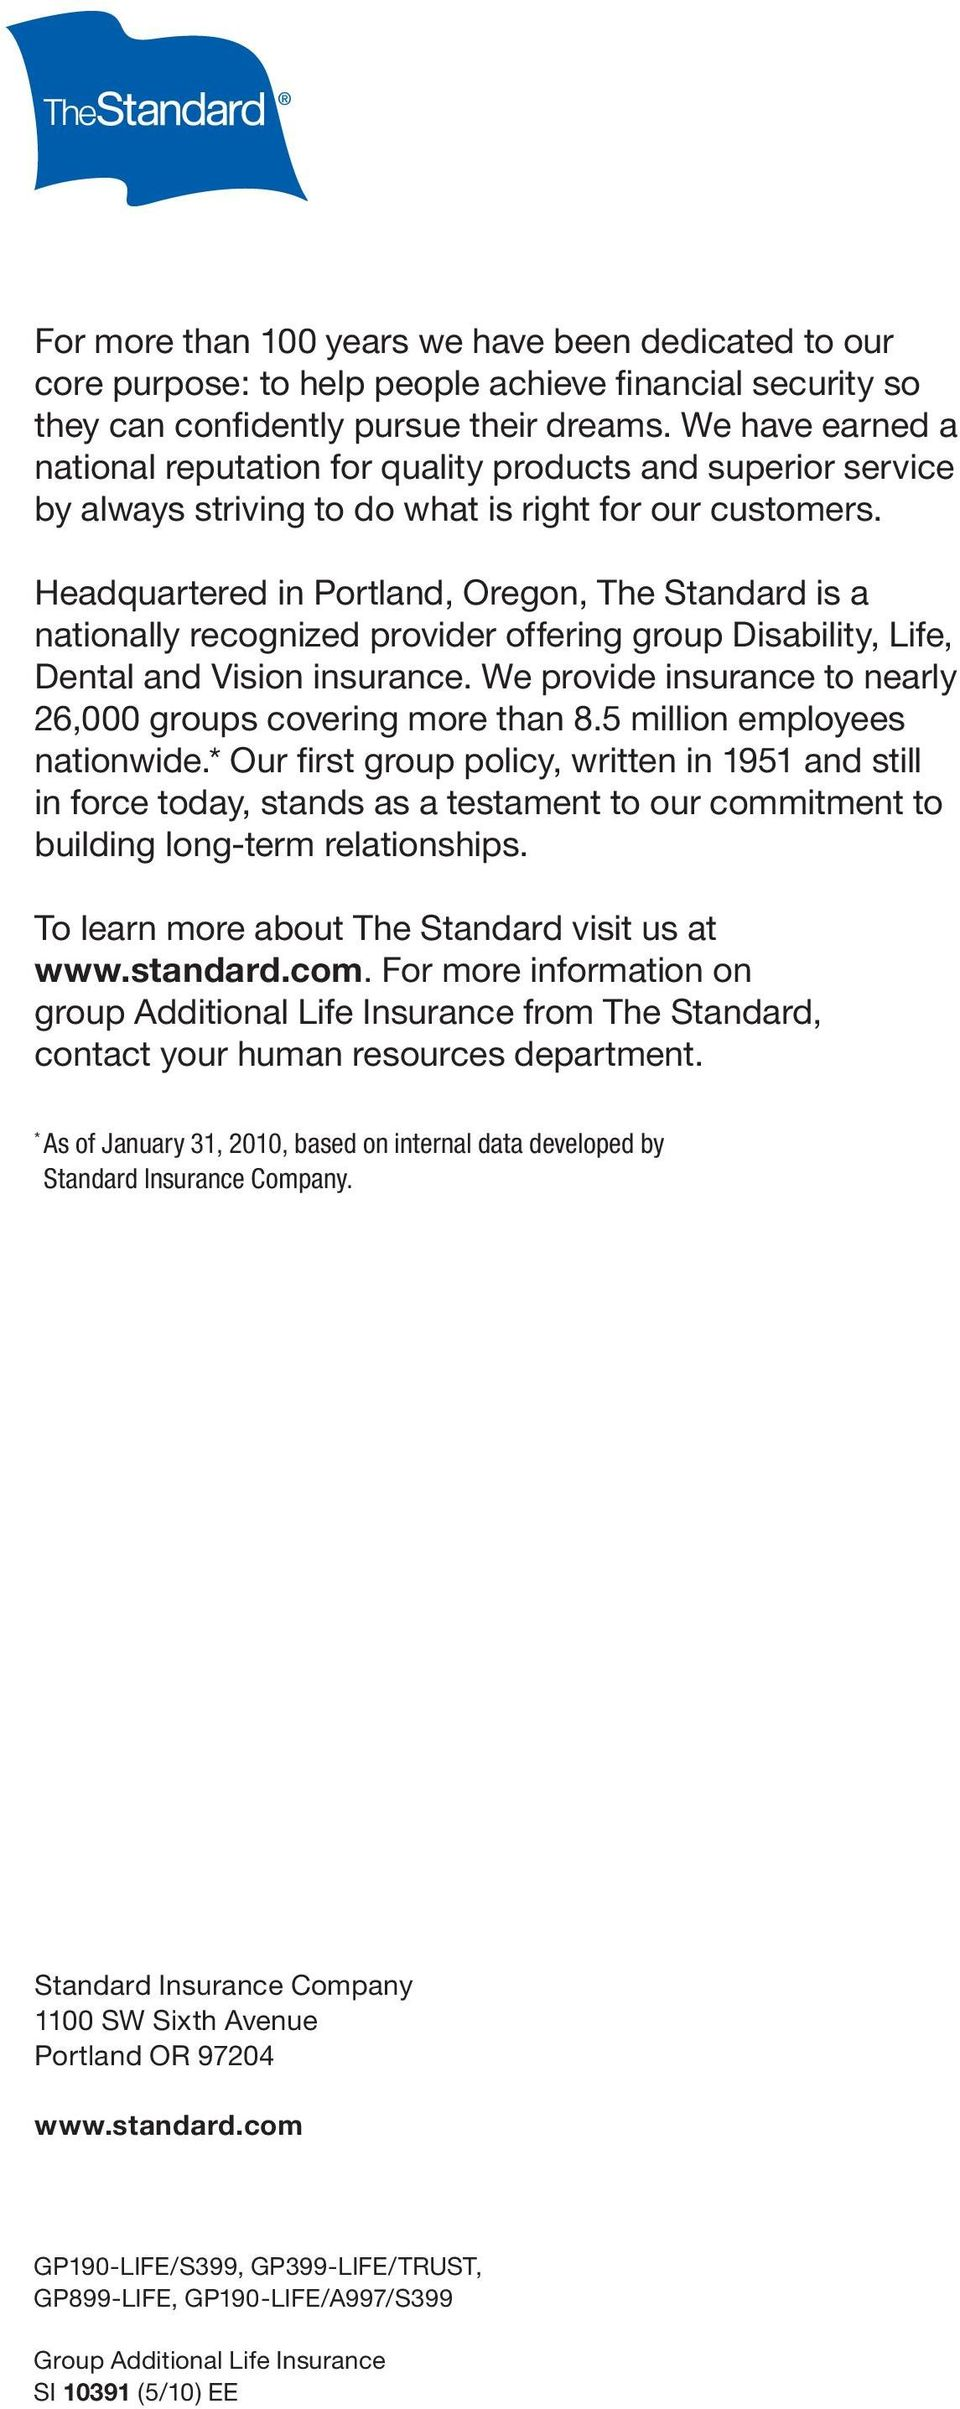 Headquartered in Portland, Oregon, The Standard is a nationally recognized provider offering group Disability, Life, Dental and Vision insurance.